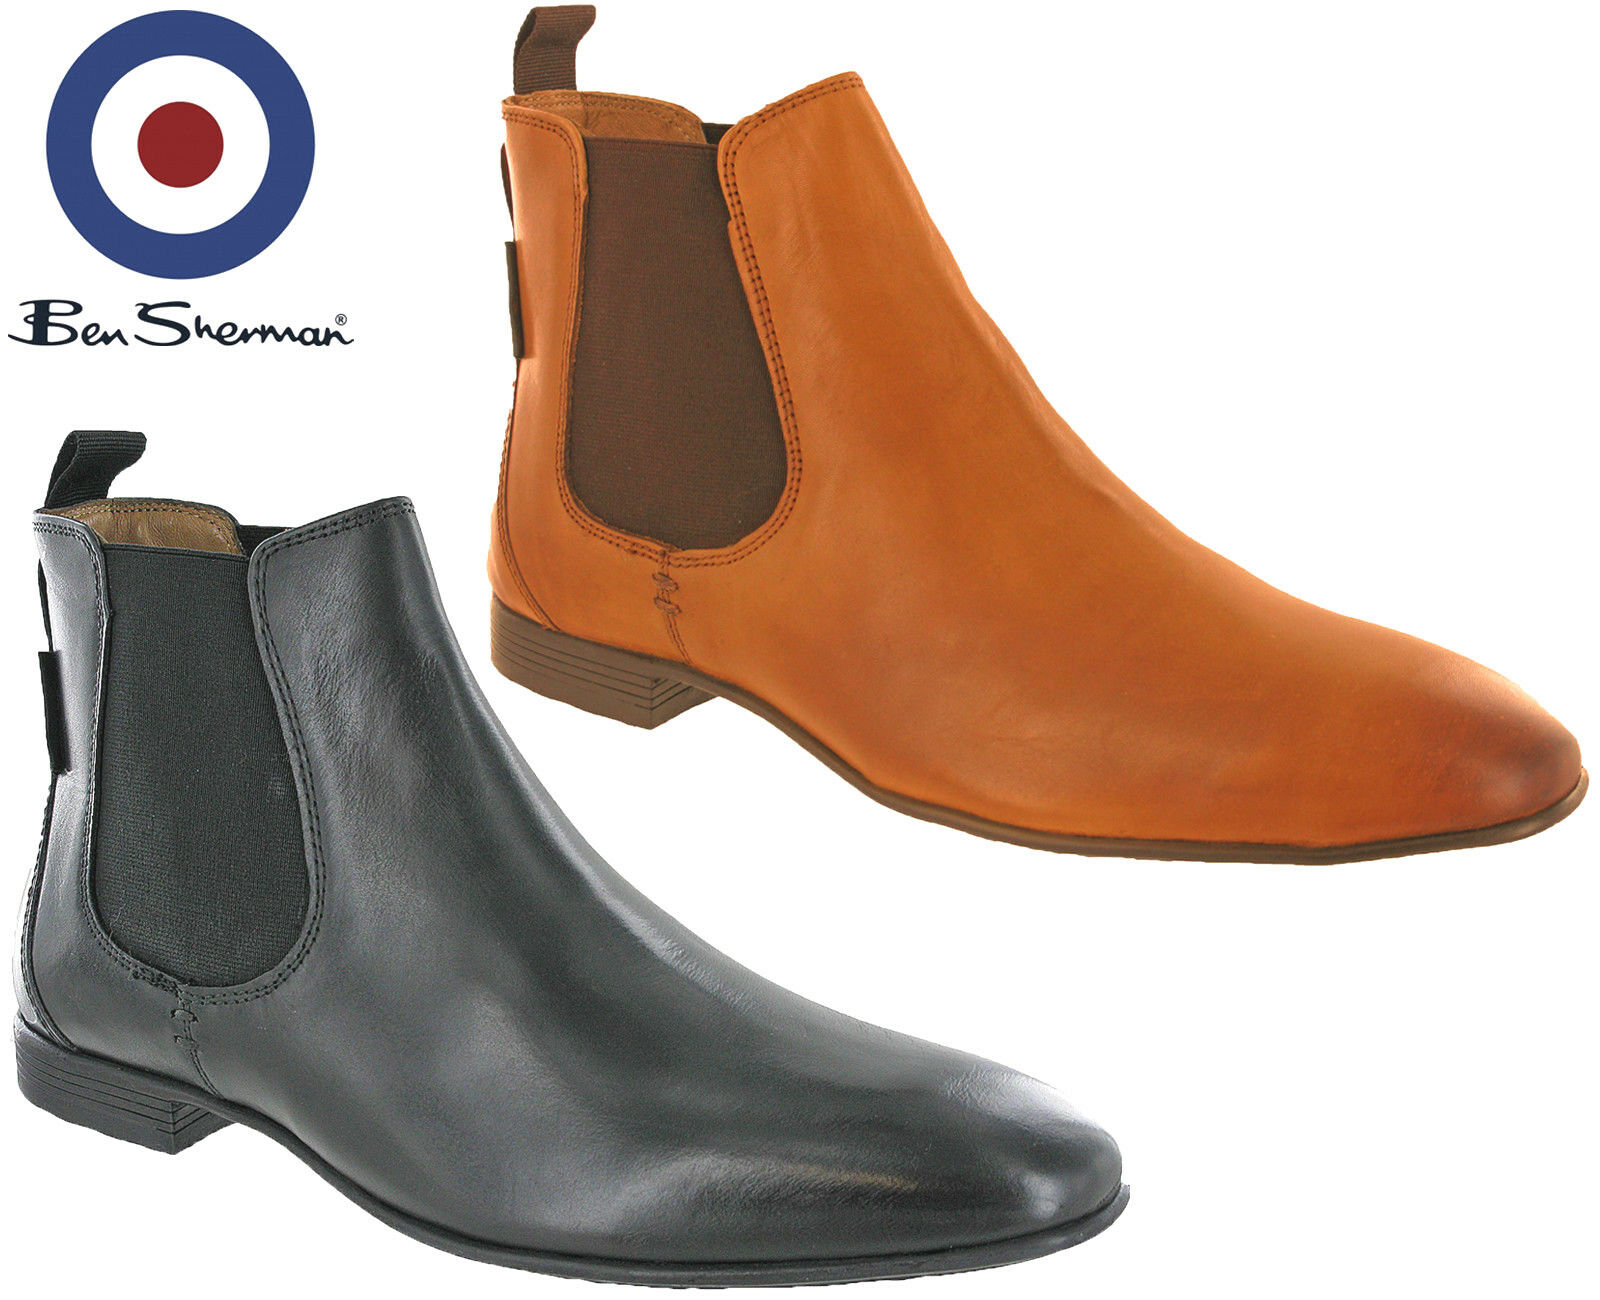 360ce8778d6 Details about Ben Sherman Chelsea Boots Leather Mens Archibald Smooth Ankle  Pull On UK 7-11